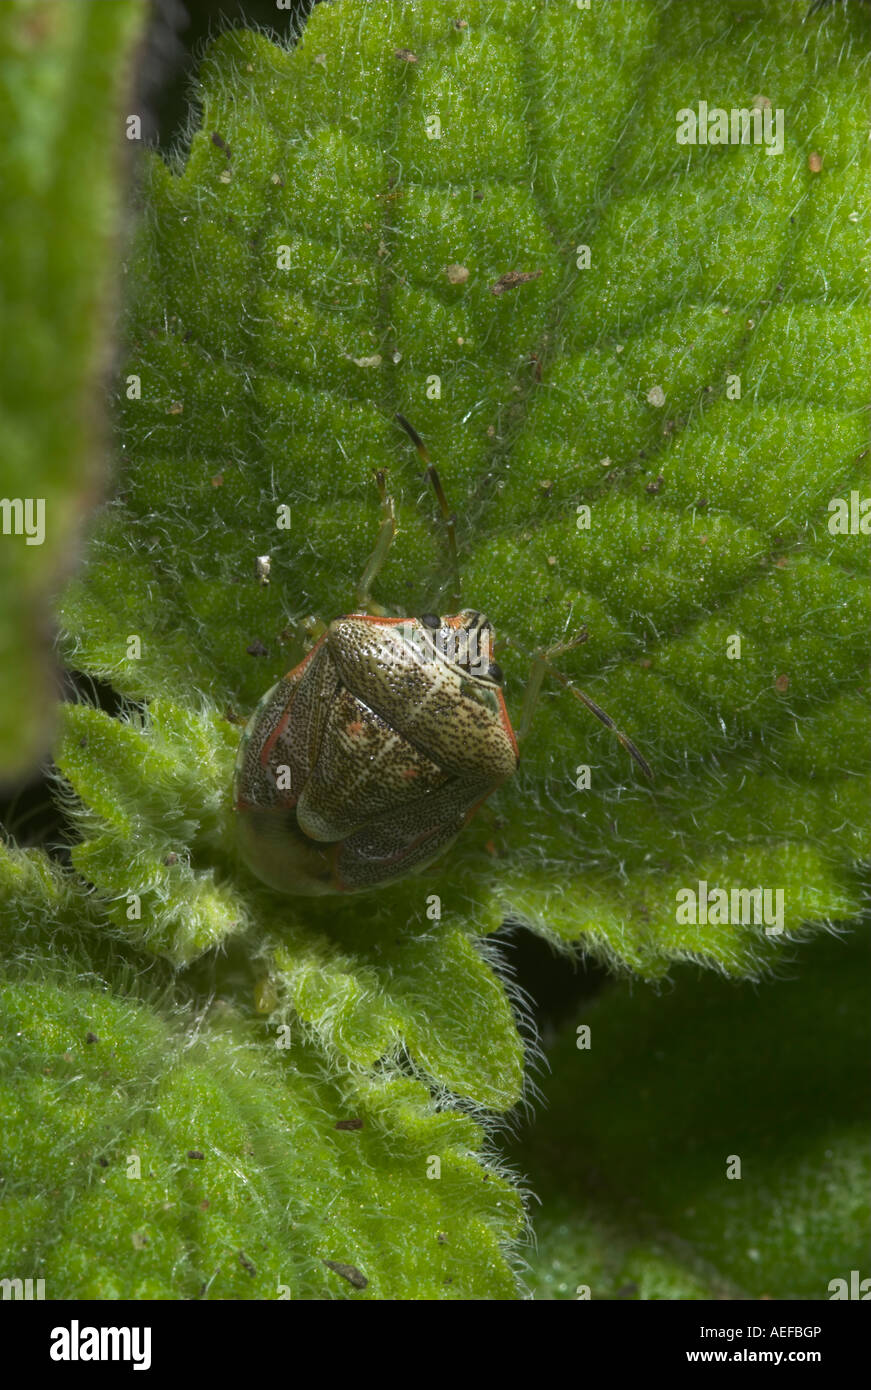 Brown marmorated stink bug on a furry green leaf. Grahamstown, Eastern Cape, South Africa Stock Photo